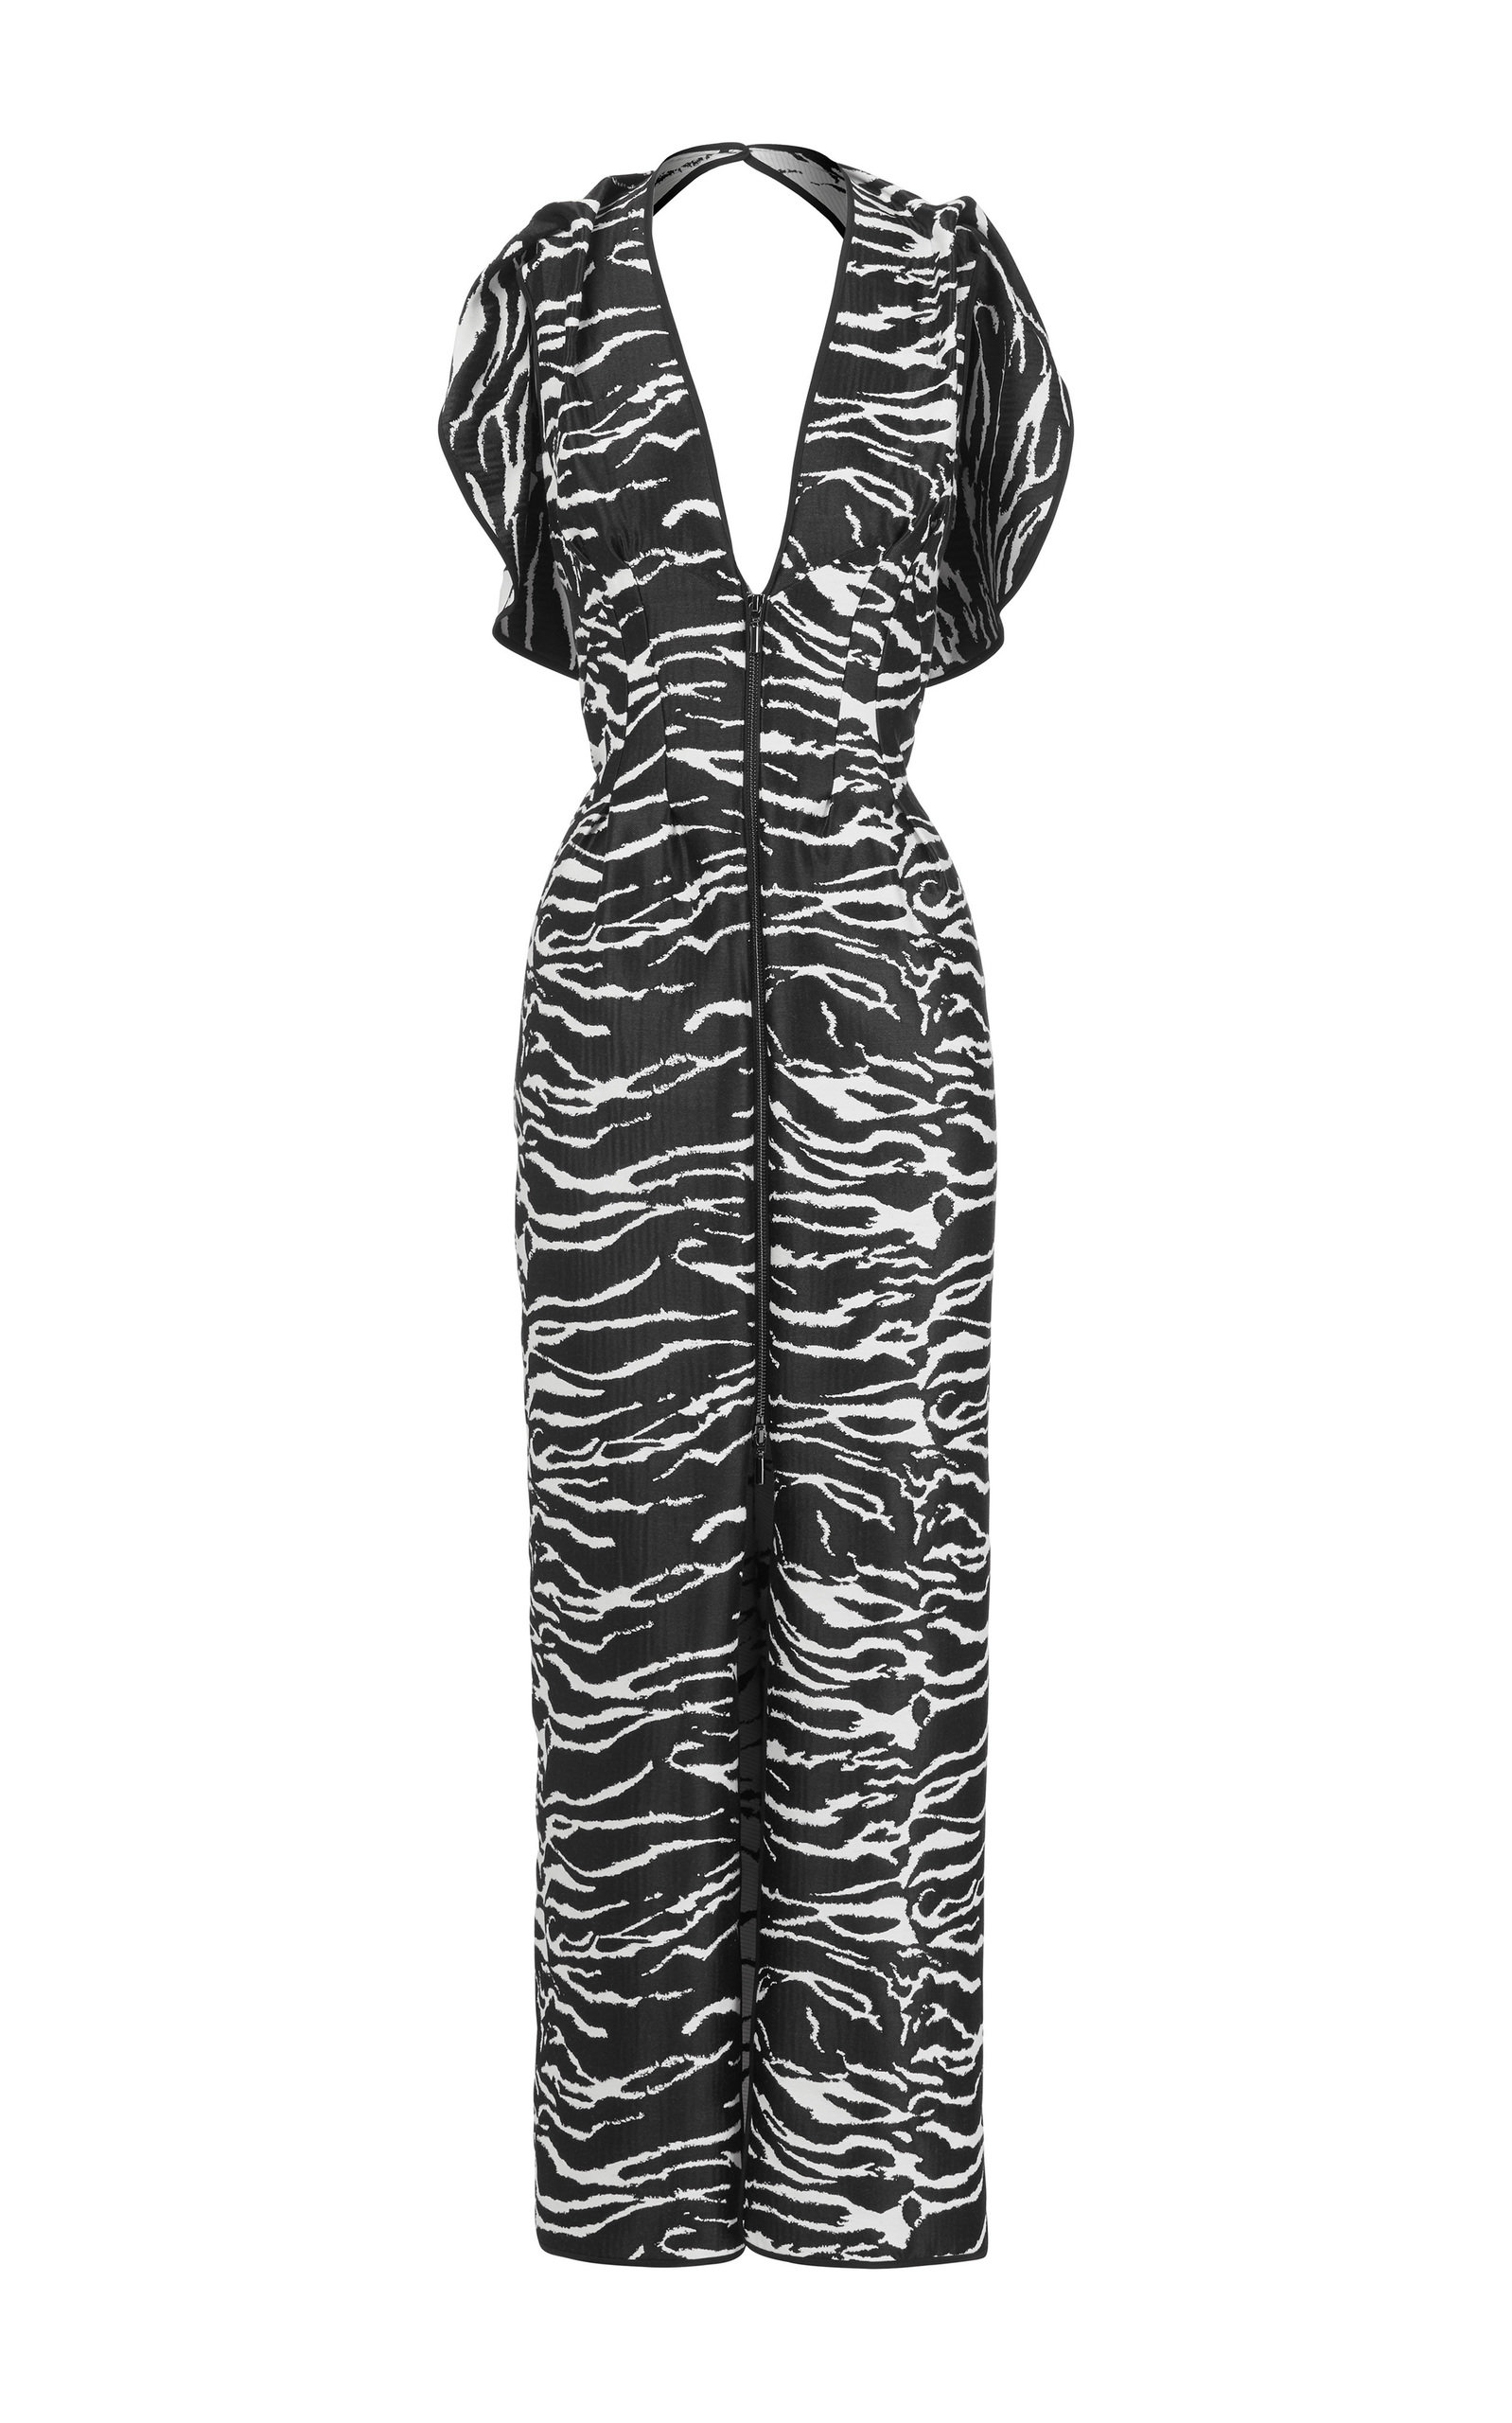 Buy Maticevski Insecta Ruffled Printed Georgette Midi Dress online, shop Maticevski at the best price